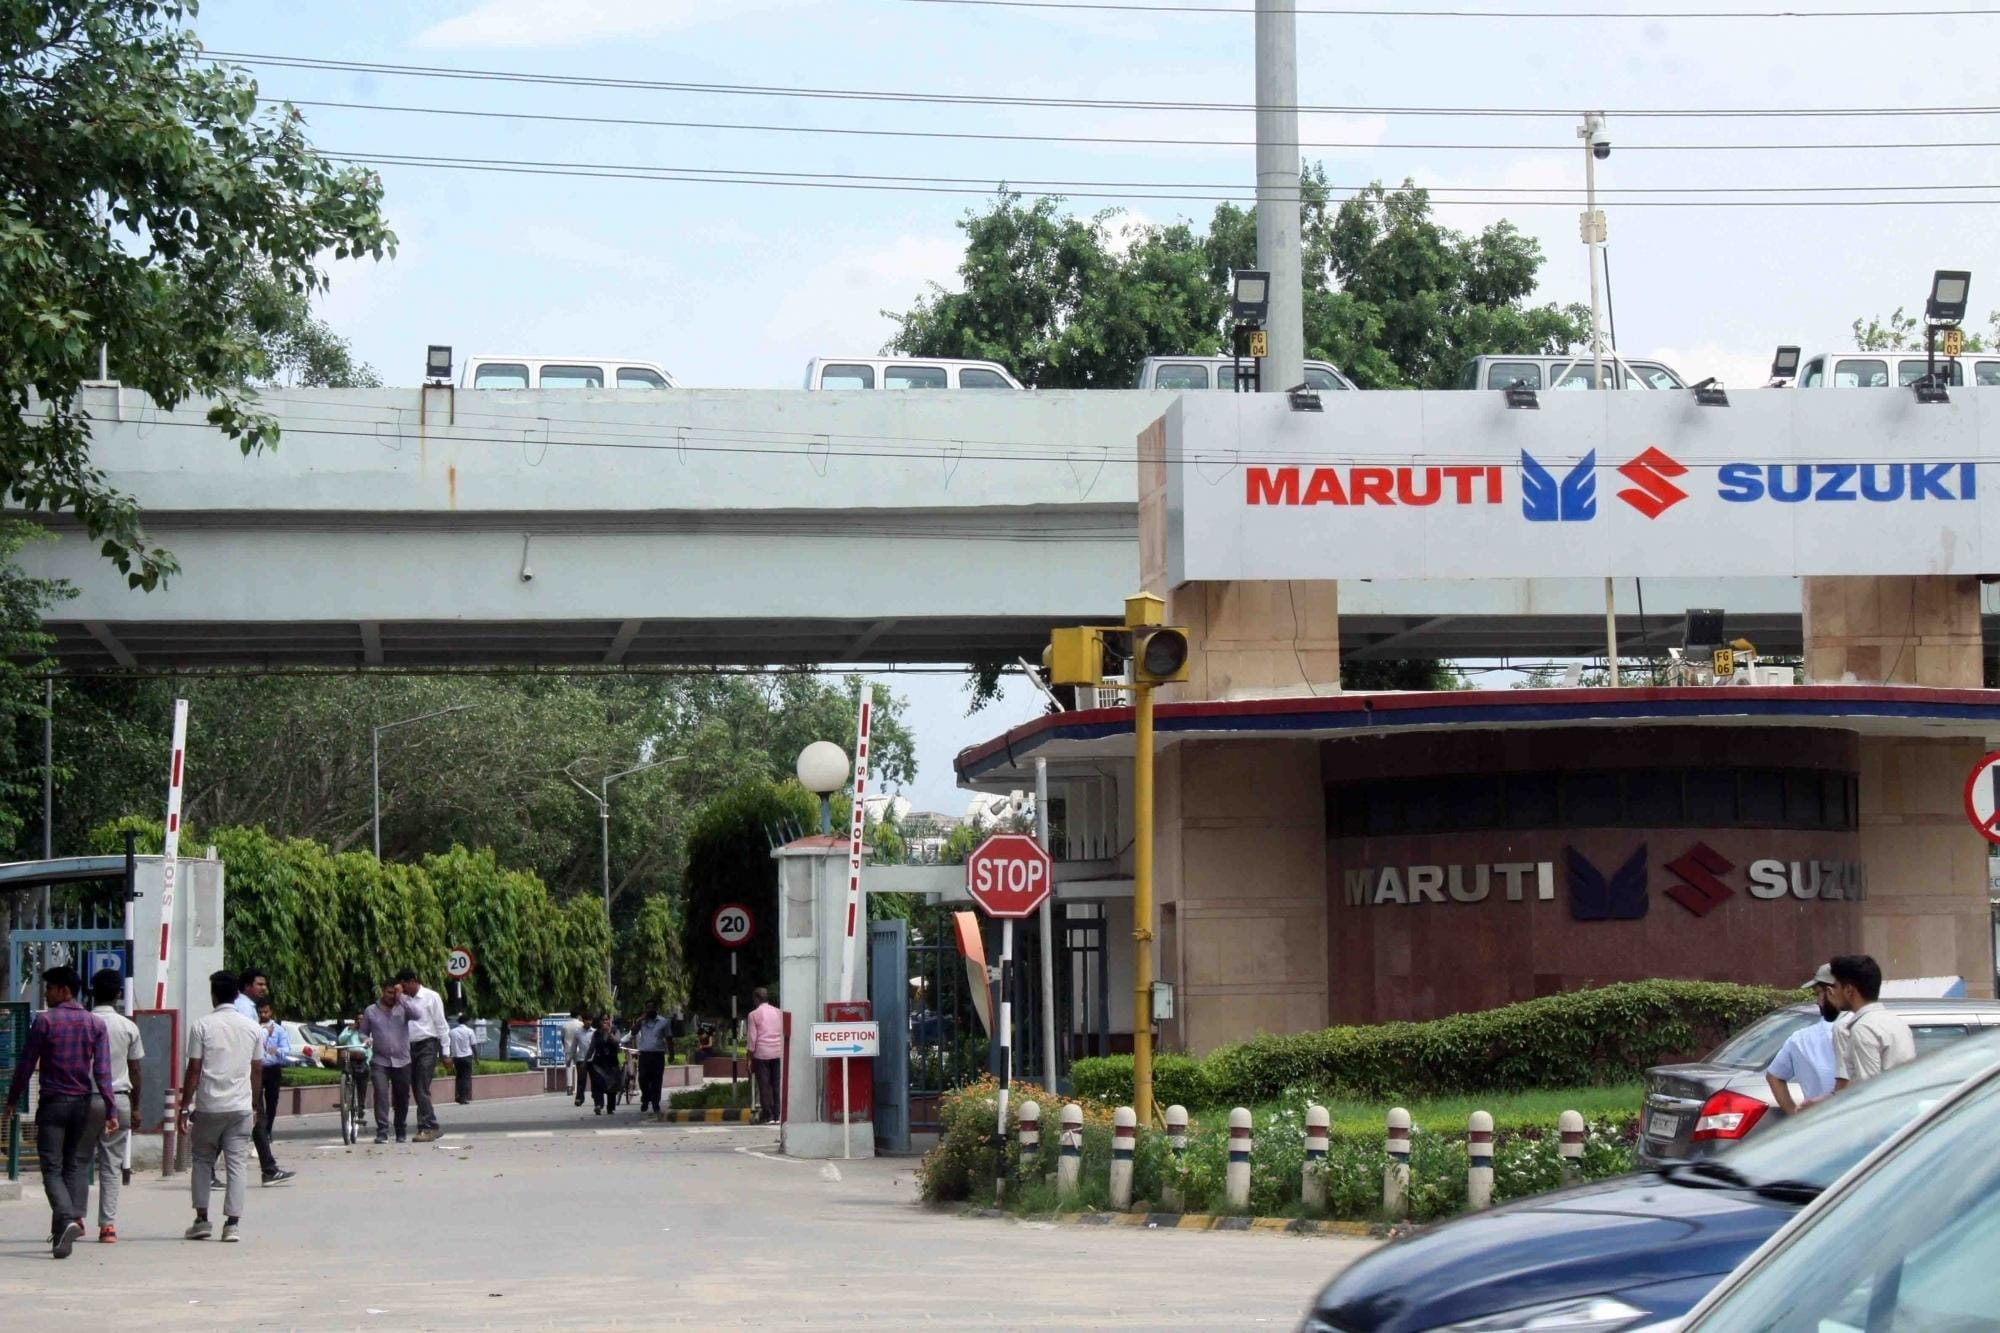 Maruti Suzuki    The company has extended the shutdown at its plant till May 16, 2021, keeping in view the current pandemic situation.